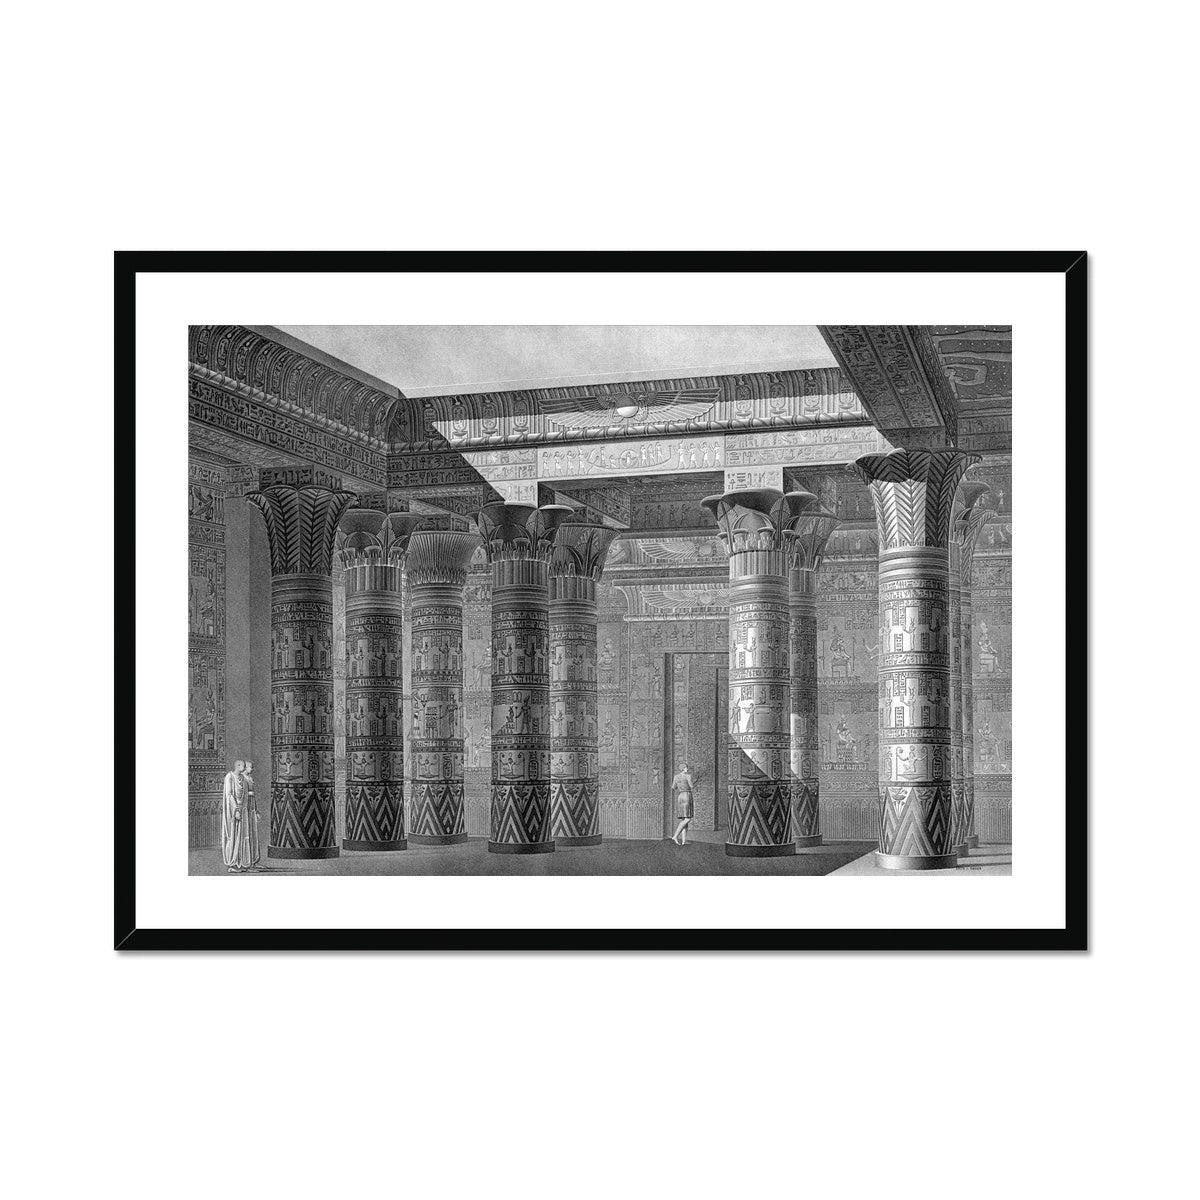 The Temple of Isis Portico Perspective - Philae Egypt -  Framed & Mounted Print